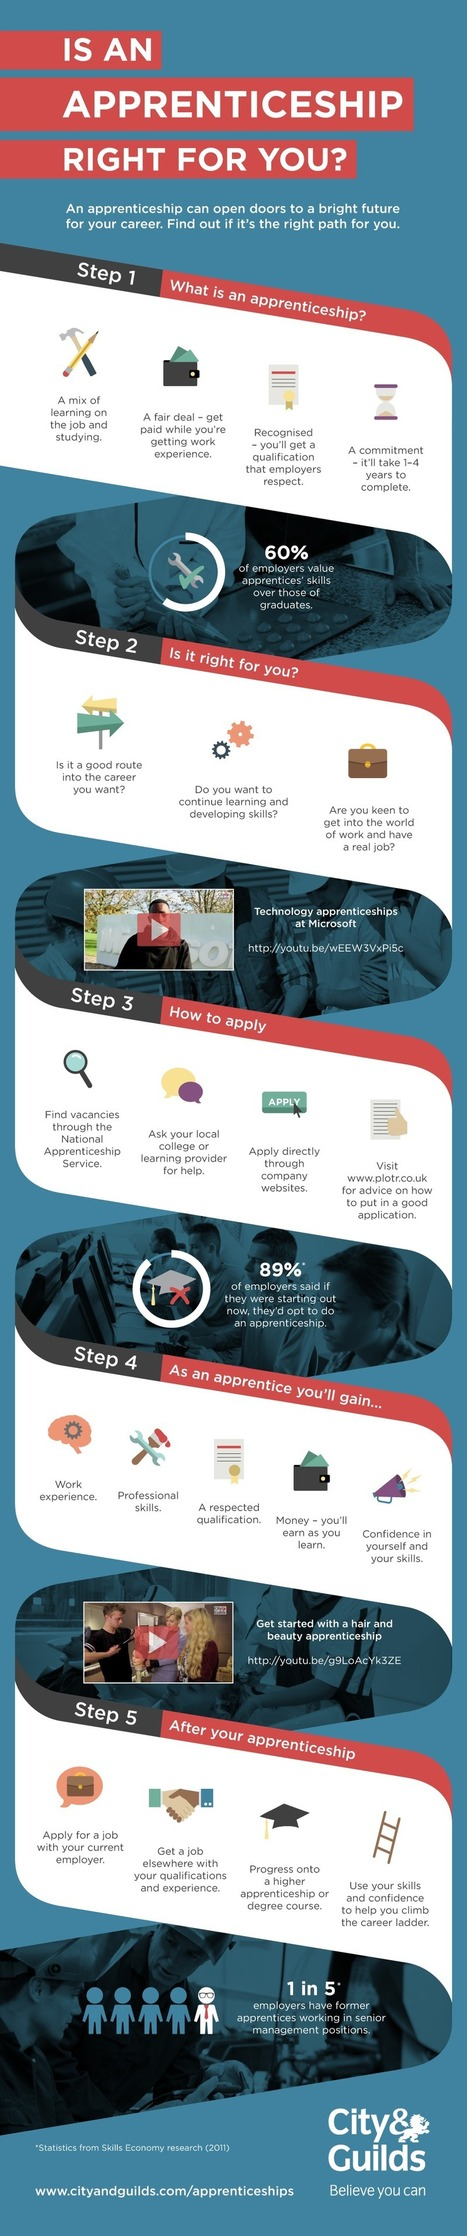 Is an apprenticeship the right career choice for you? – infographic   21st Century Employability Skills   Scoop.it